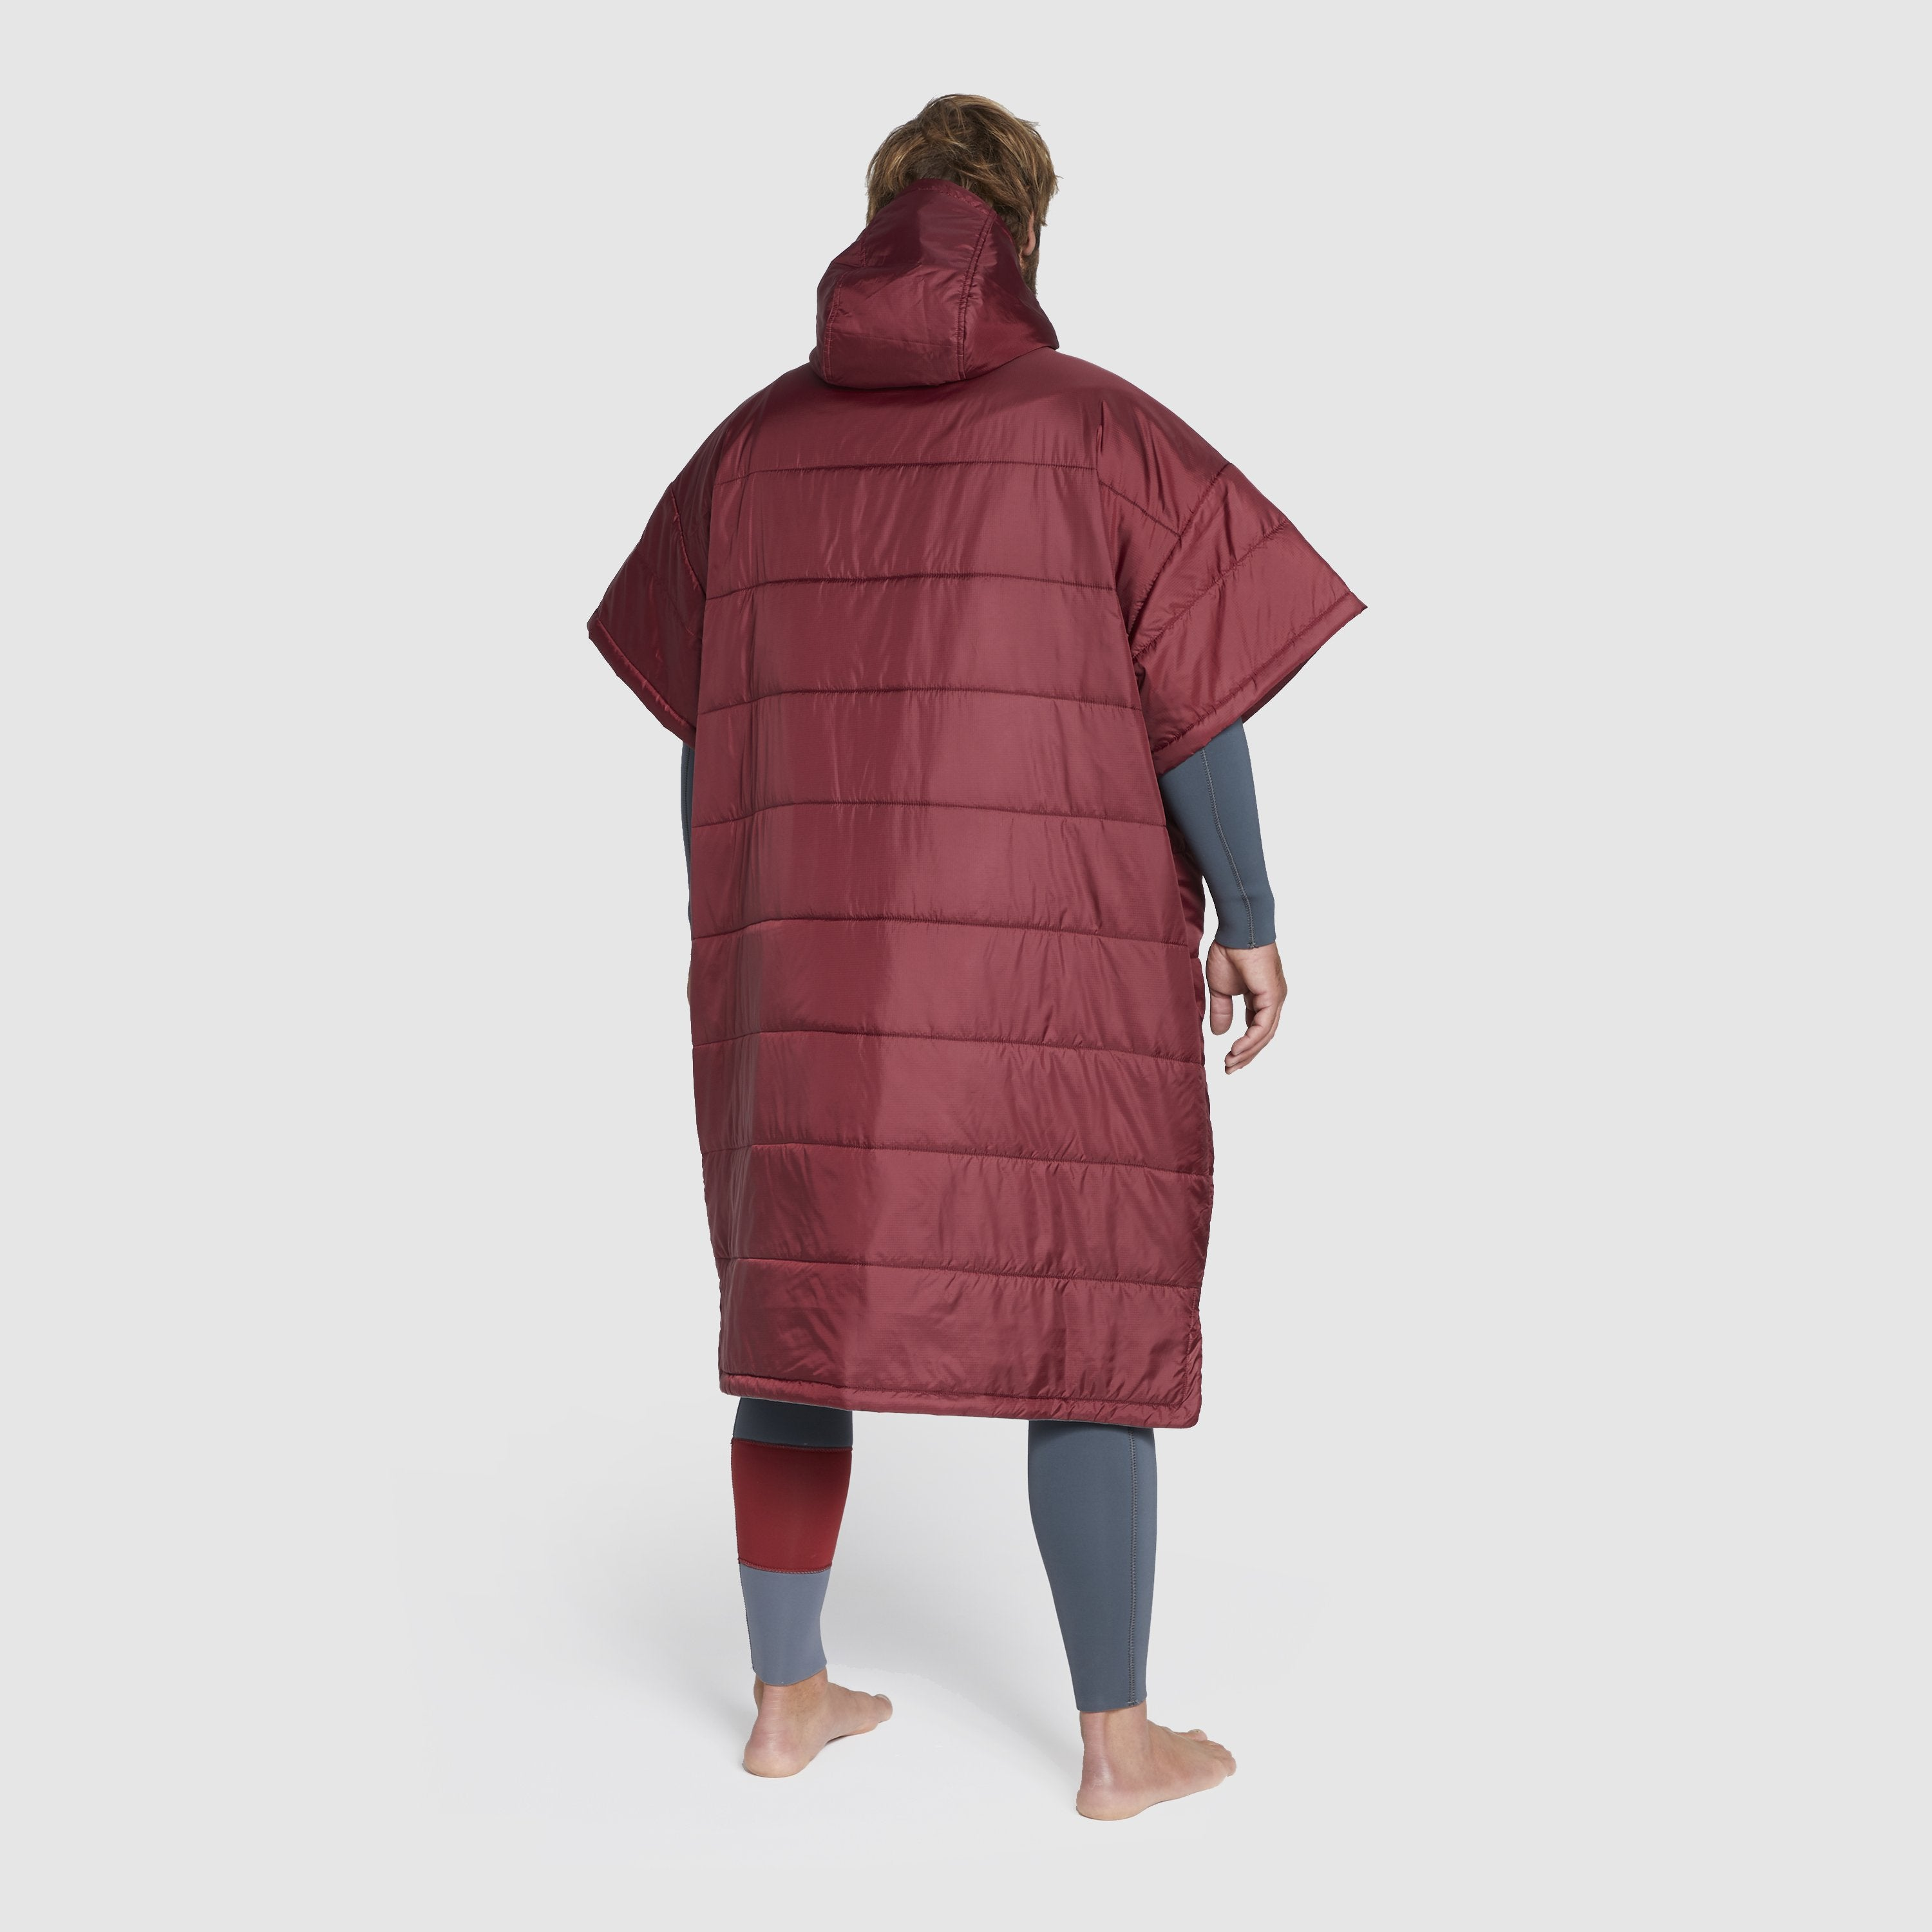 Voited Insulated Outdoor Poncho - Oxblood image 3